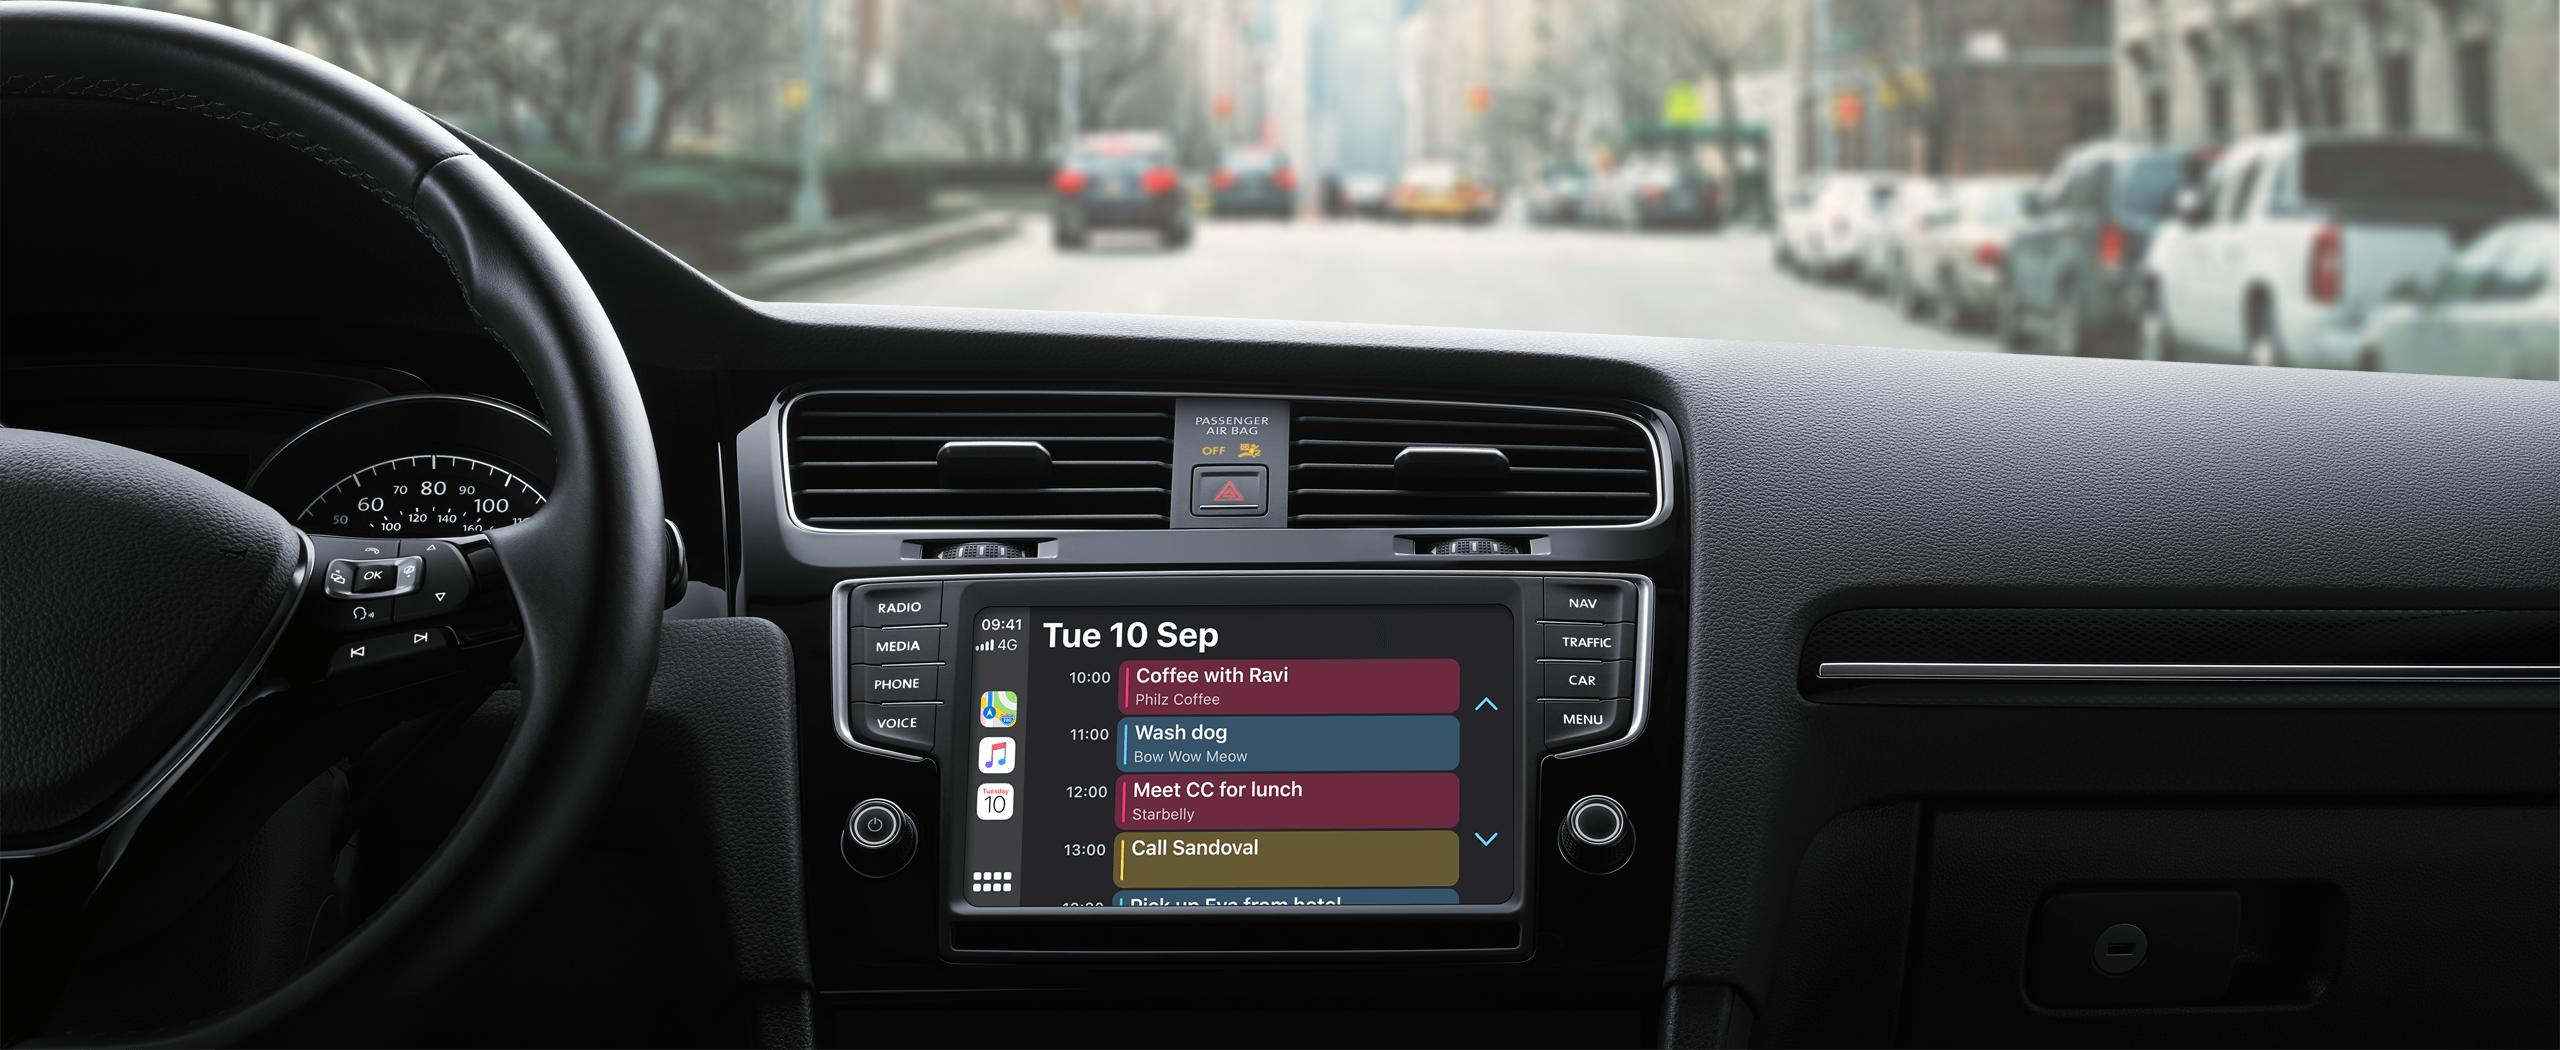 apple CarPlay calendar app